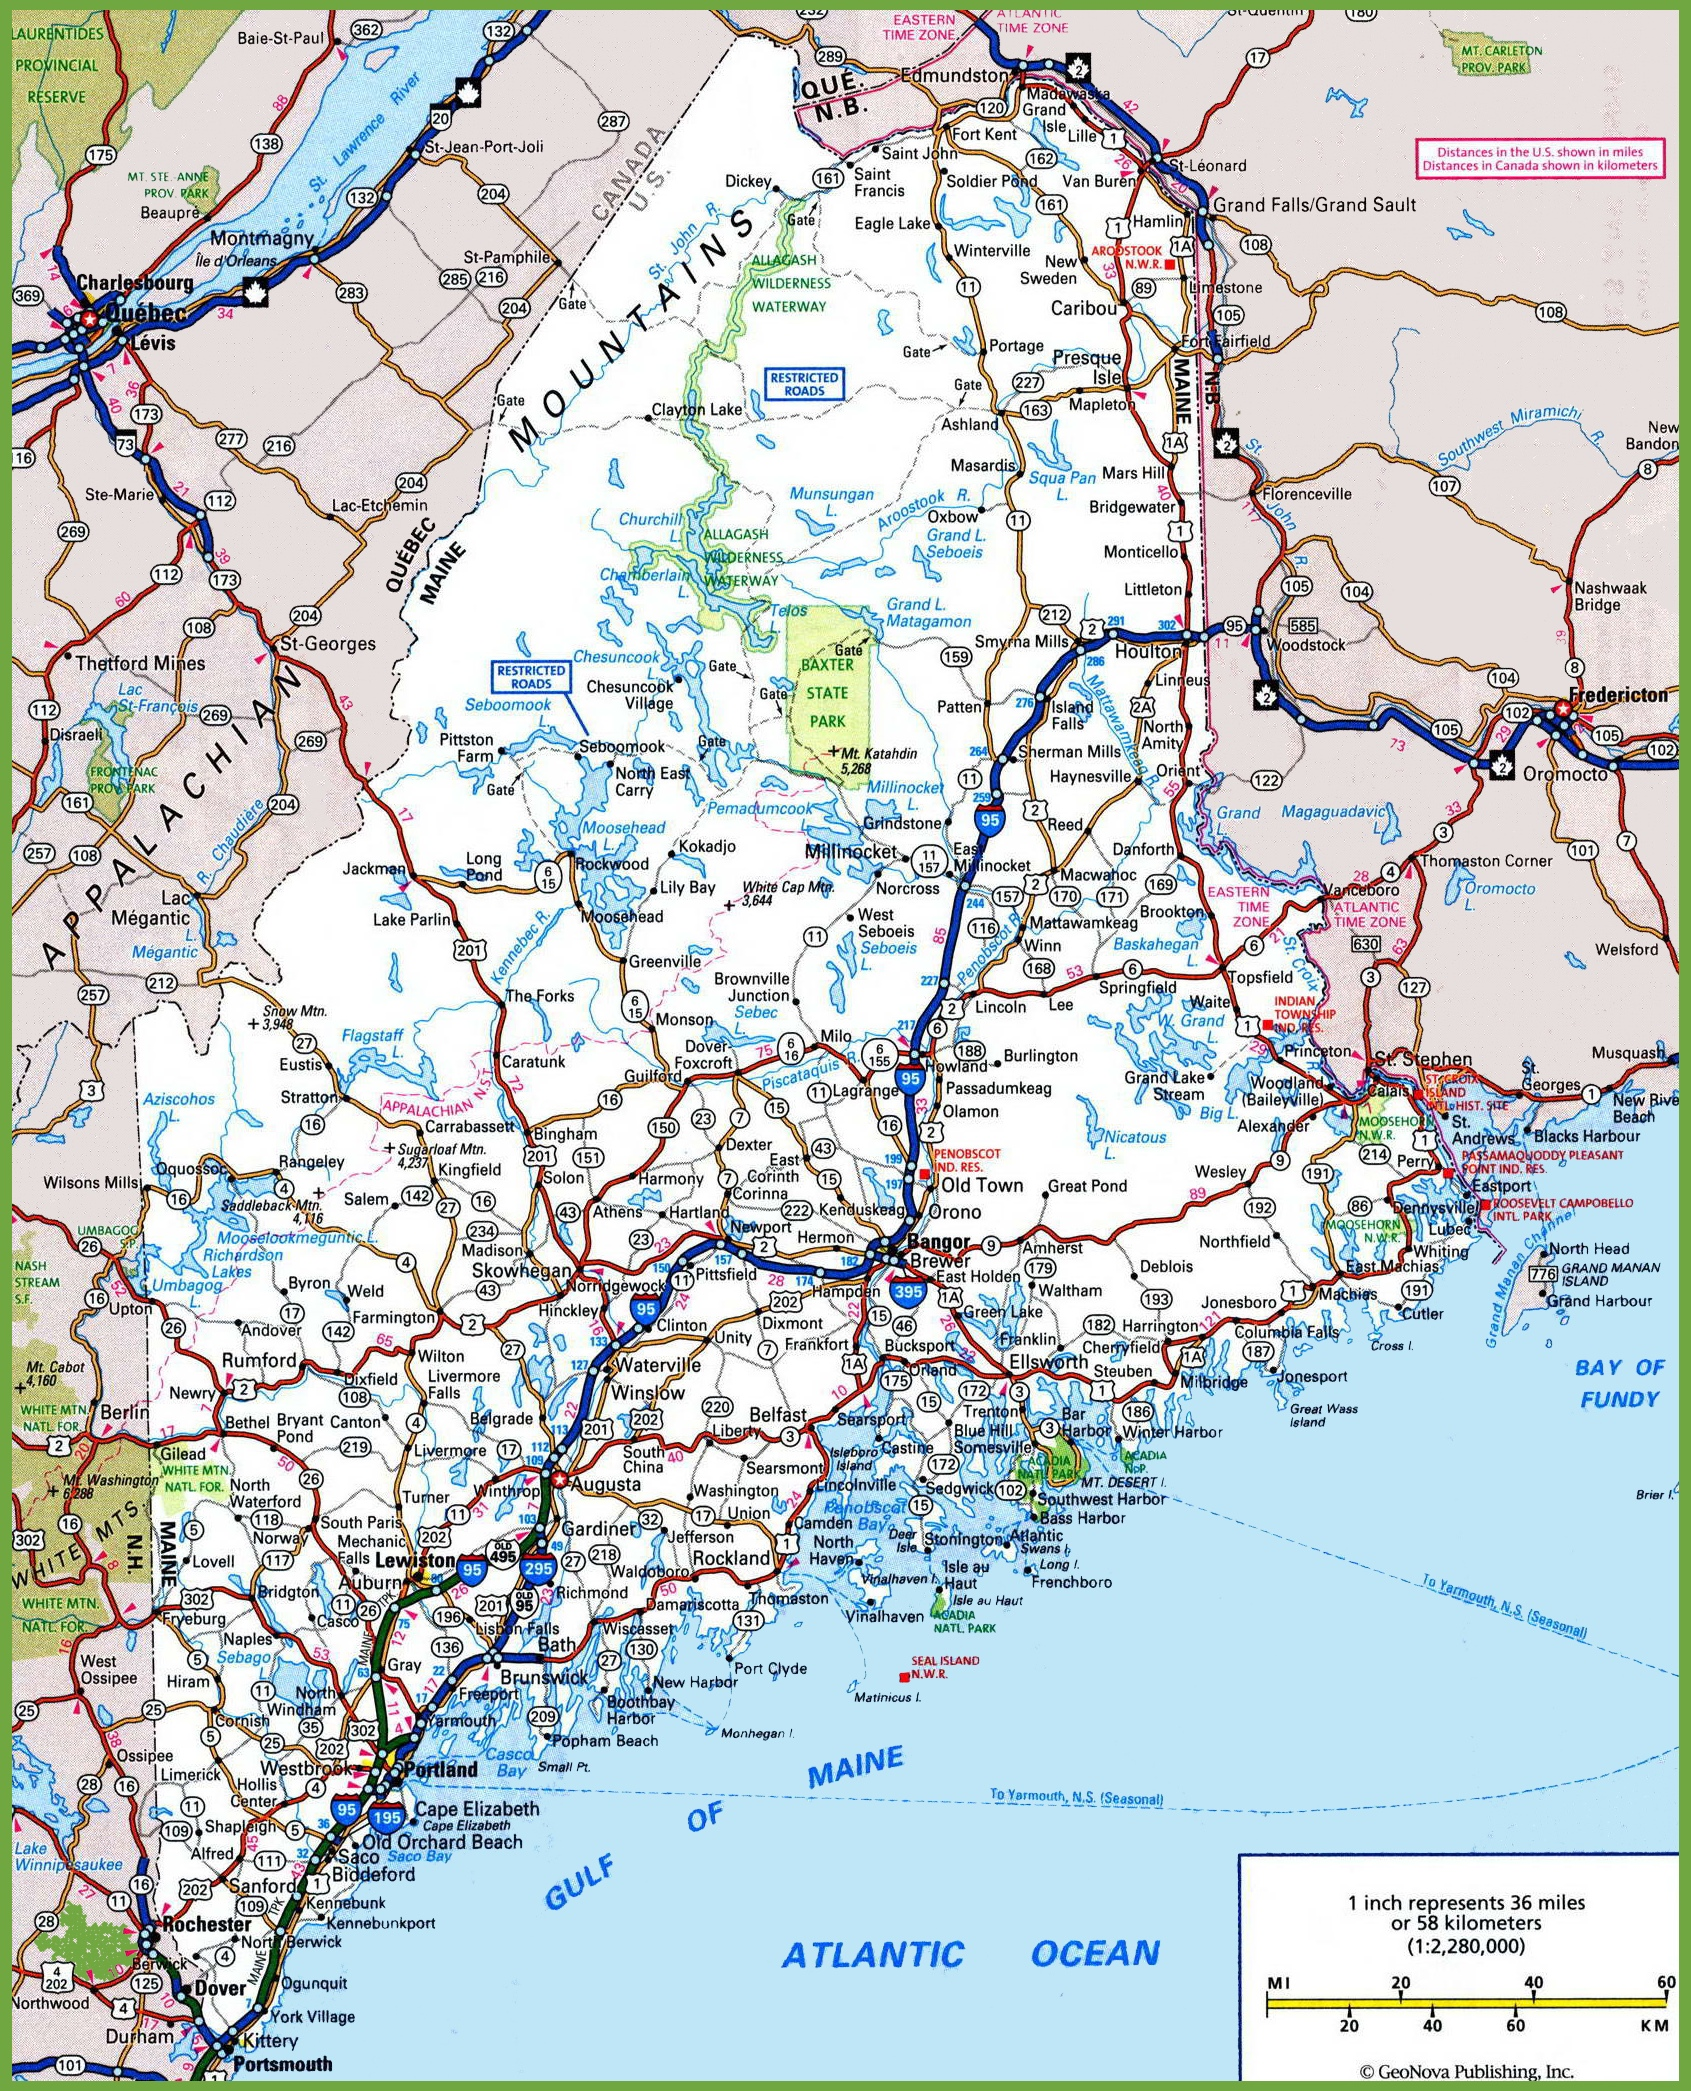 Maine Road Map - State of maine map